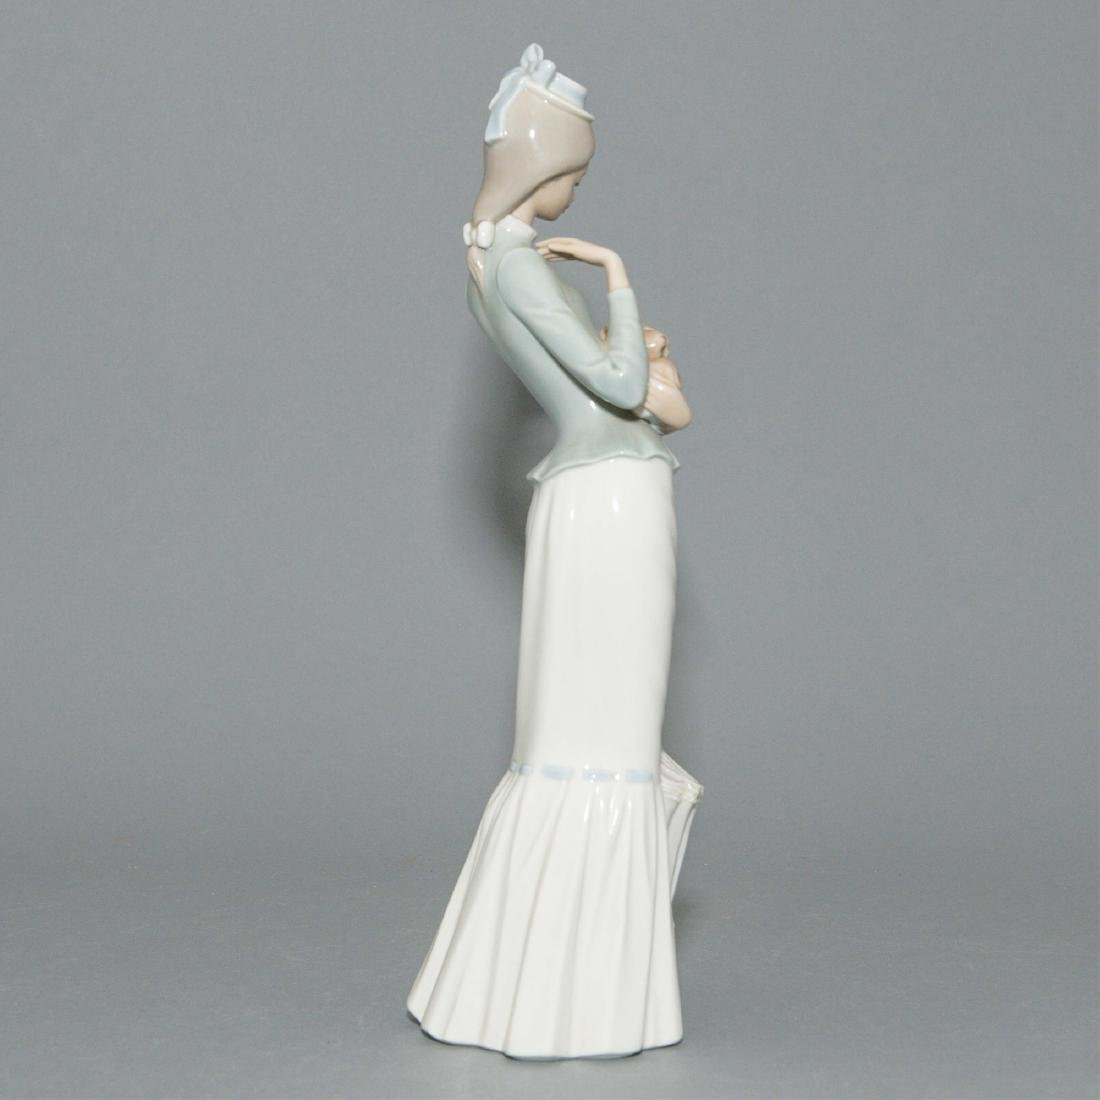 LLADRO WALK WITH THE DOG FIGURINE 4893 - 4